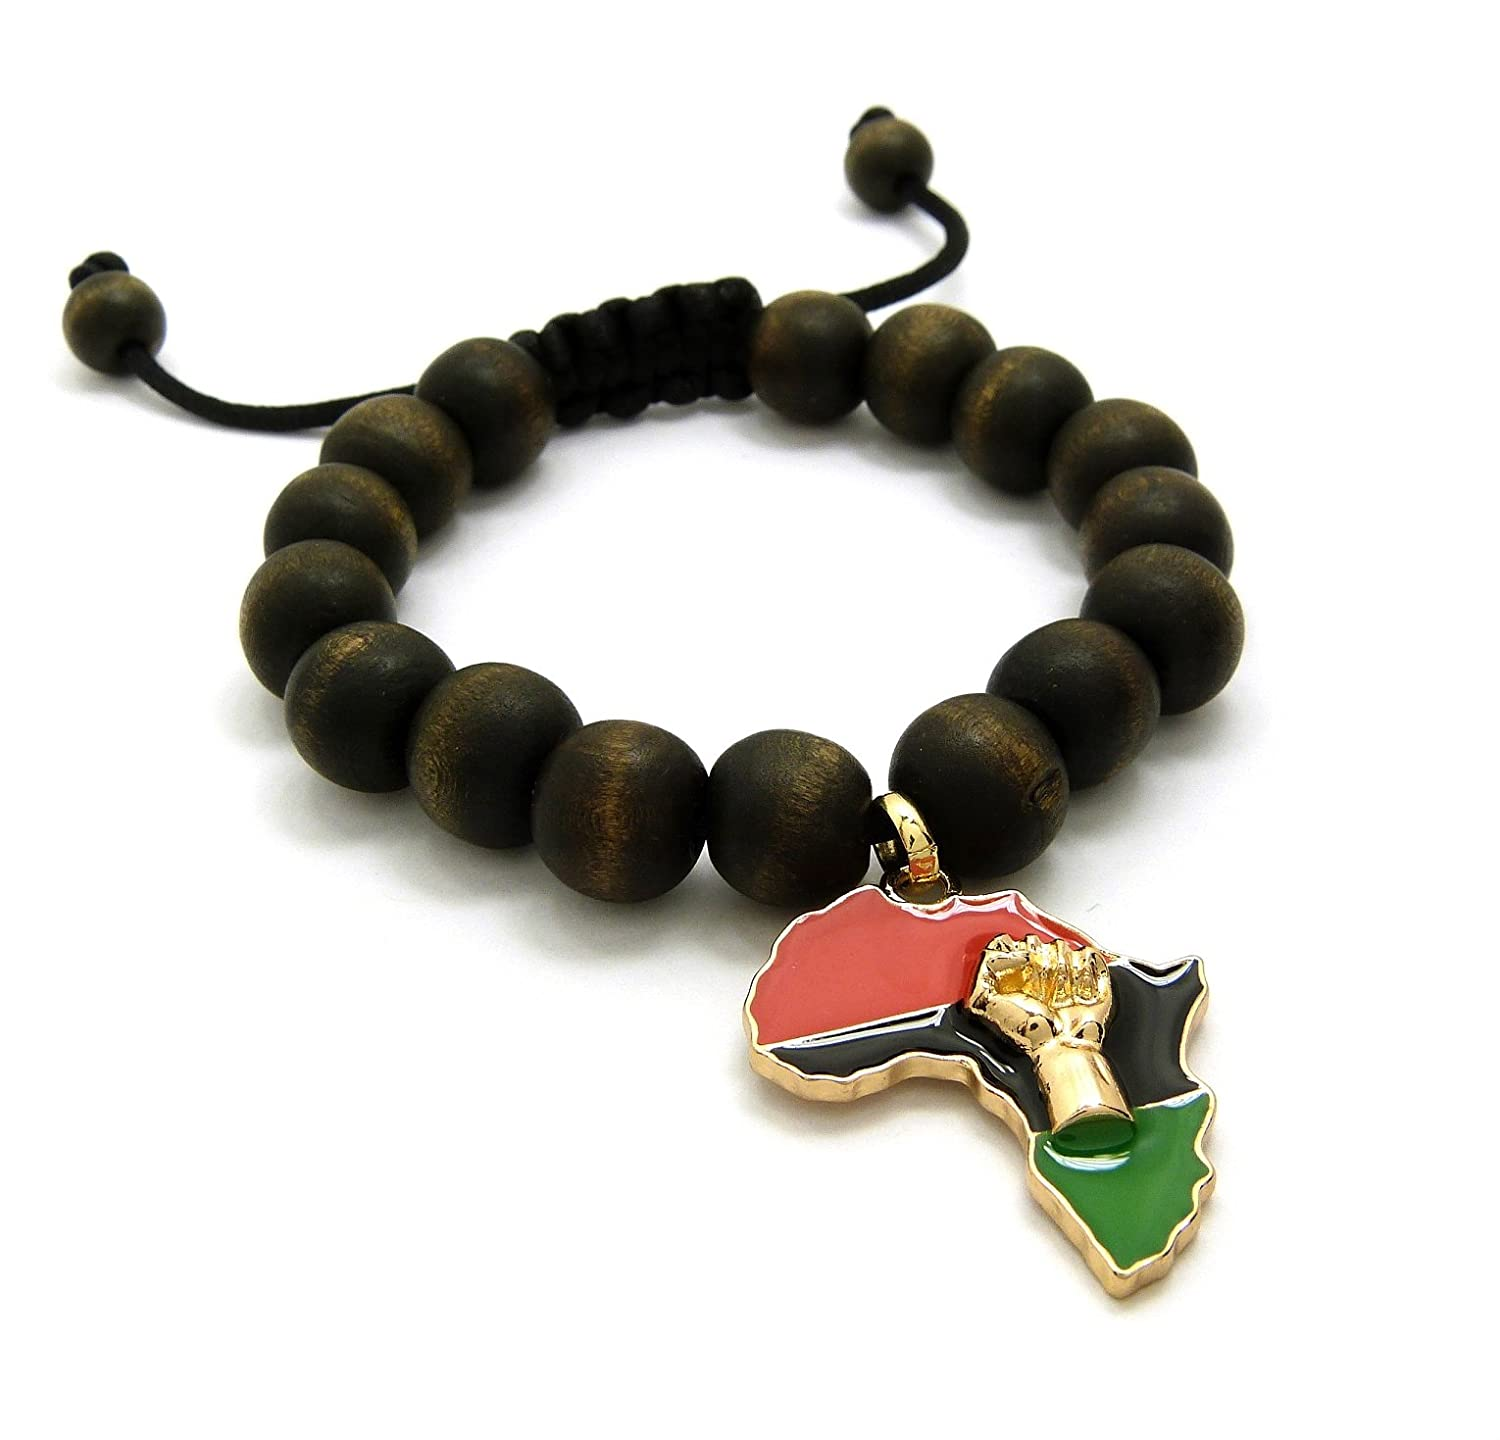 Pan Colored Fist Power in Africa Map Charm Adjustable Wooden Bead Bracelet in Black, Brown Fashion21 RB26G-WBK